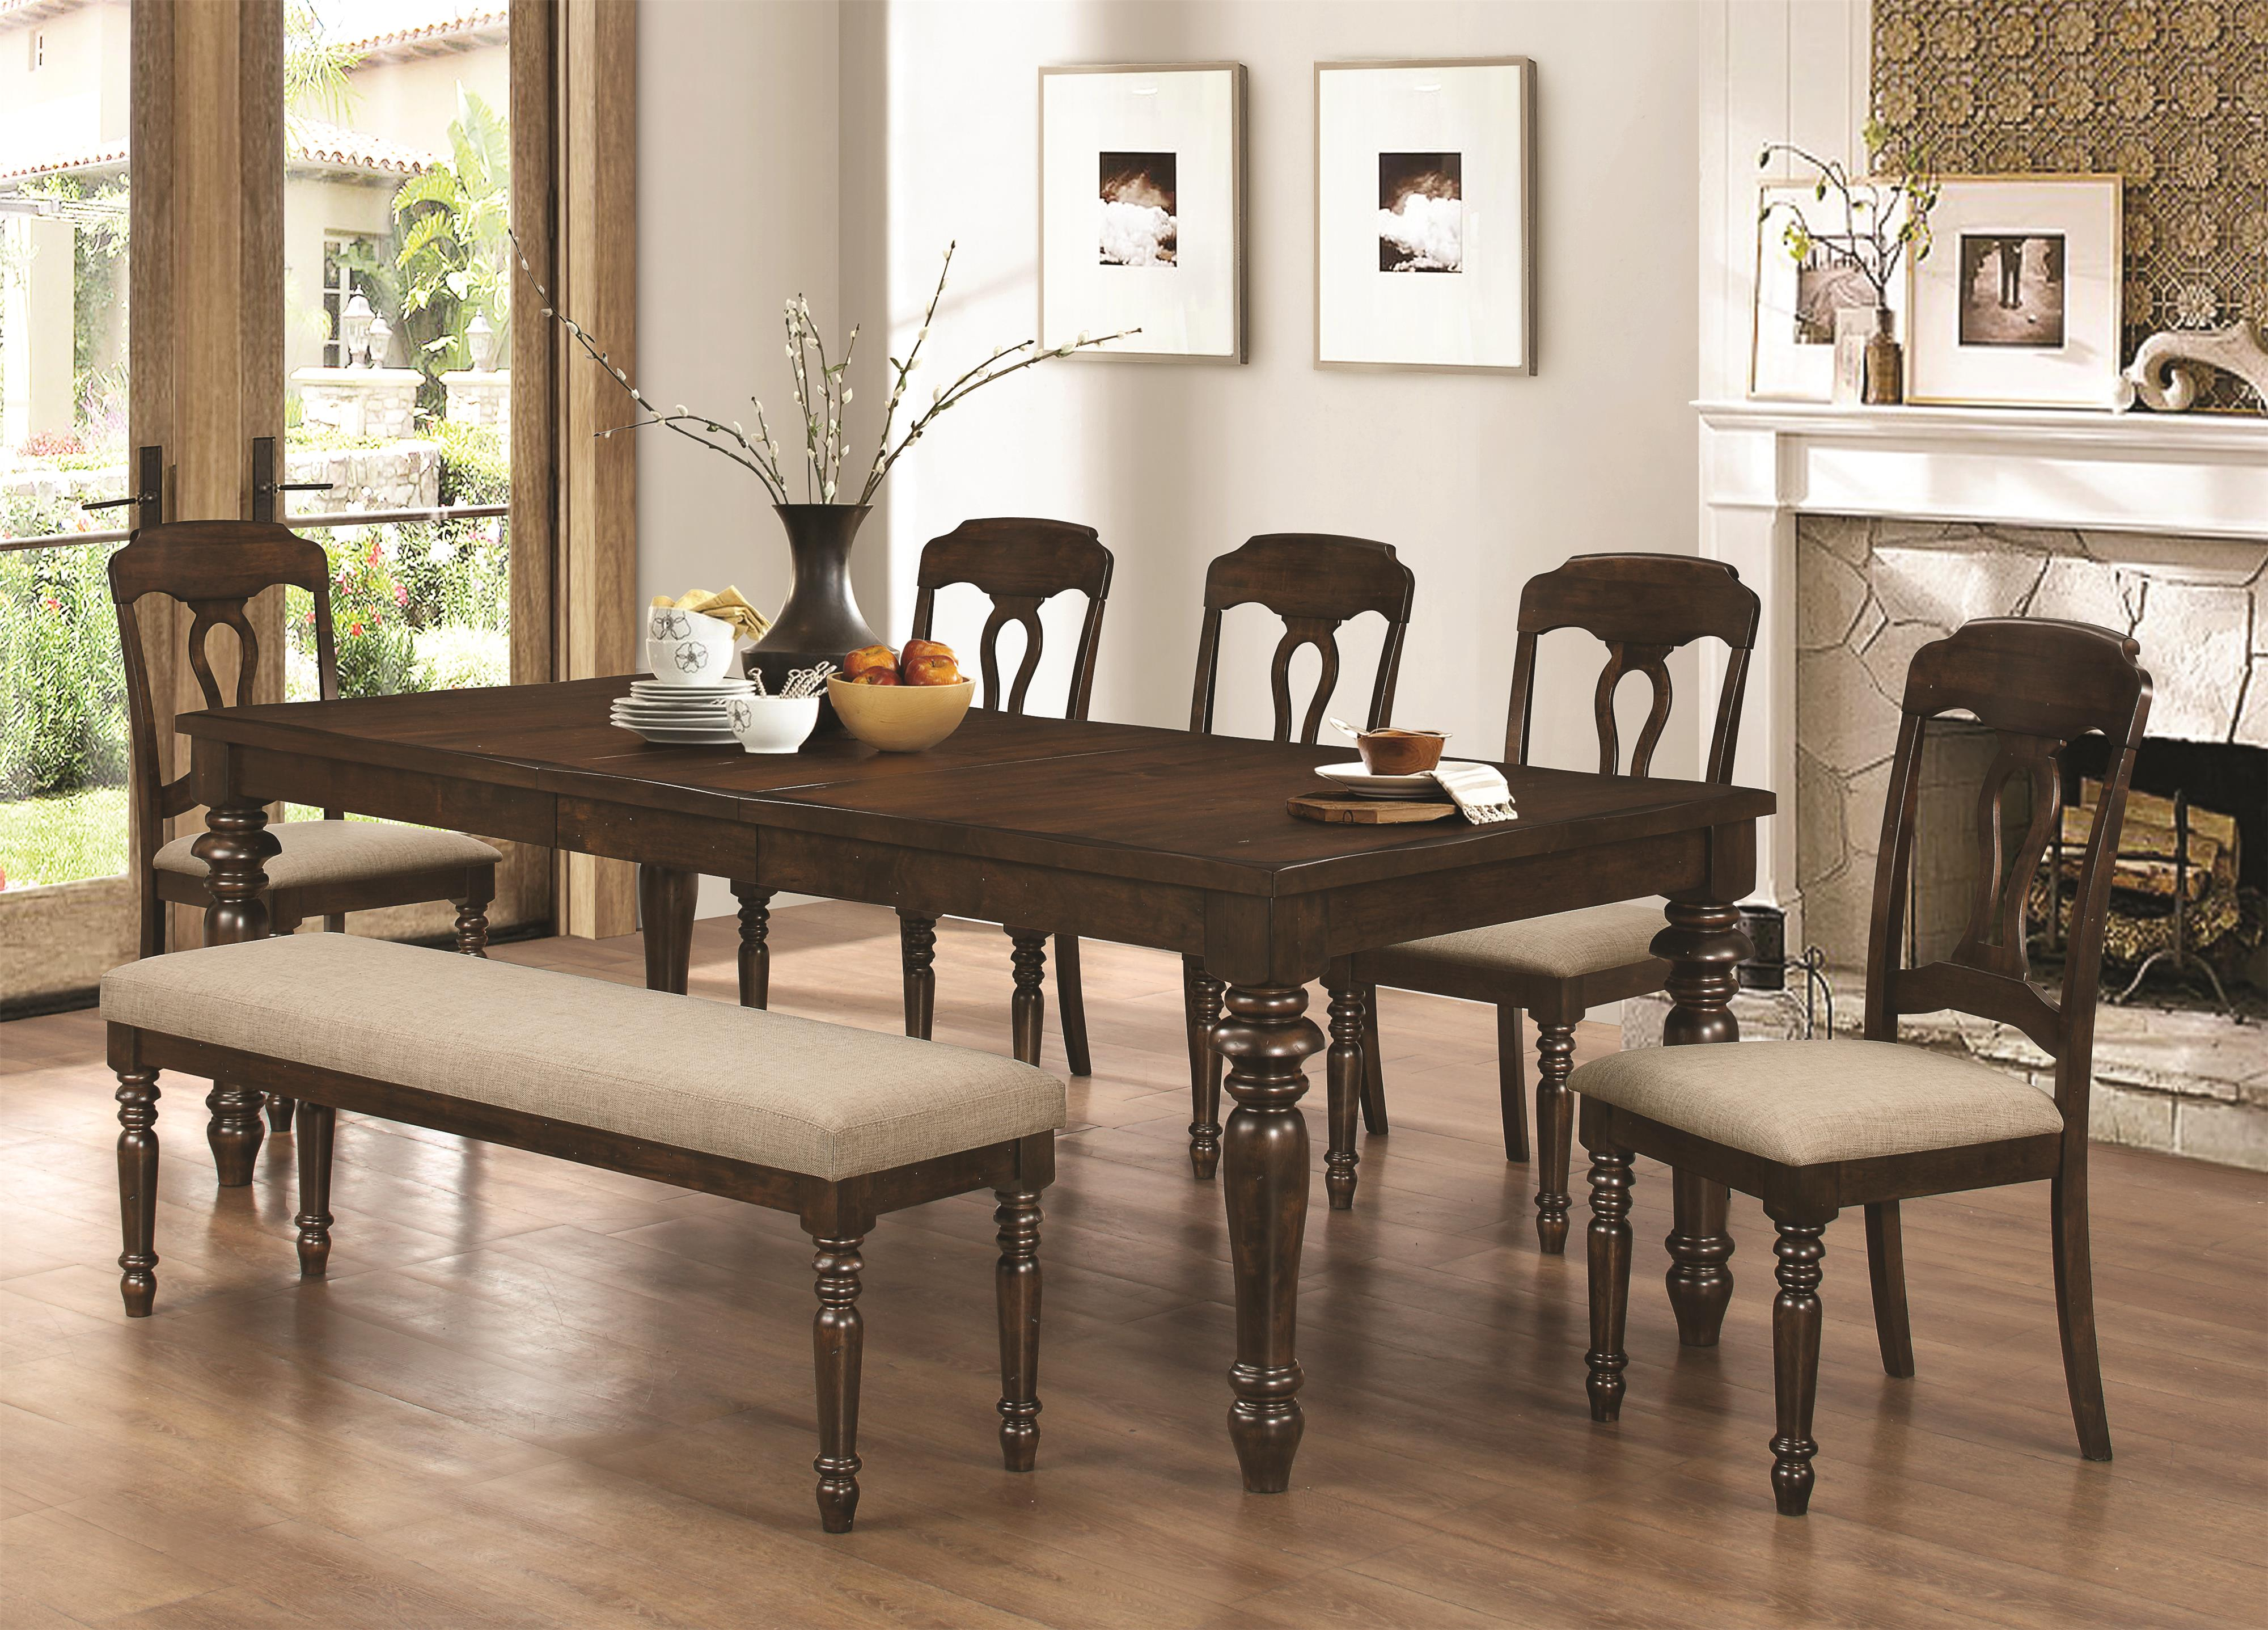 Coaster Hamilton 7 Piece Dining Set with Bench - Item Number: 106351+5x106352+106353